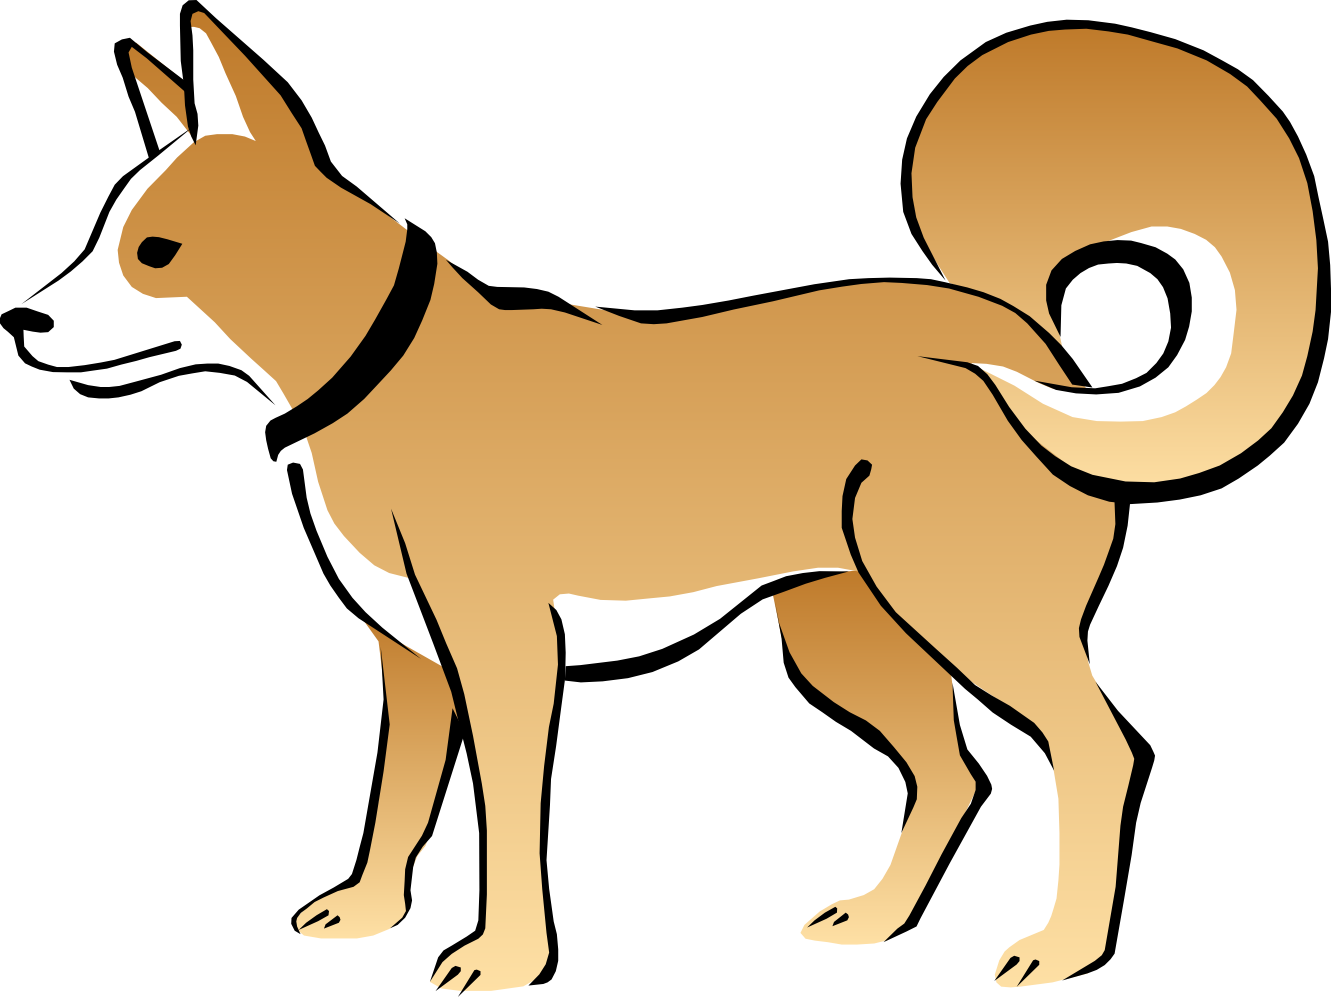 Pet clipart common animal. Dog png image dogs